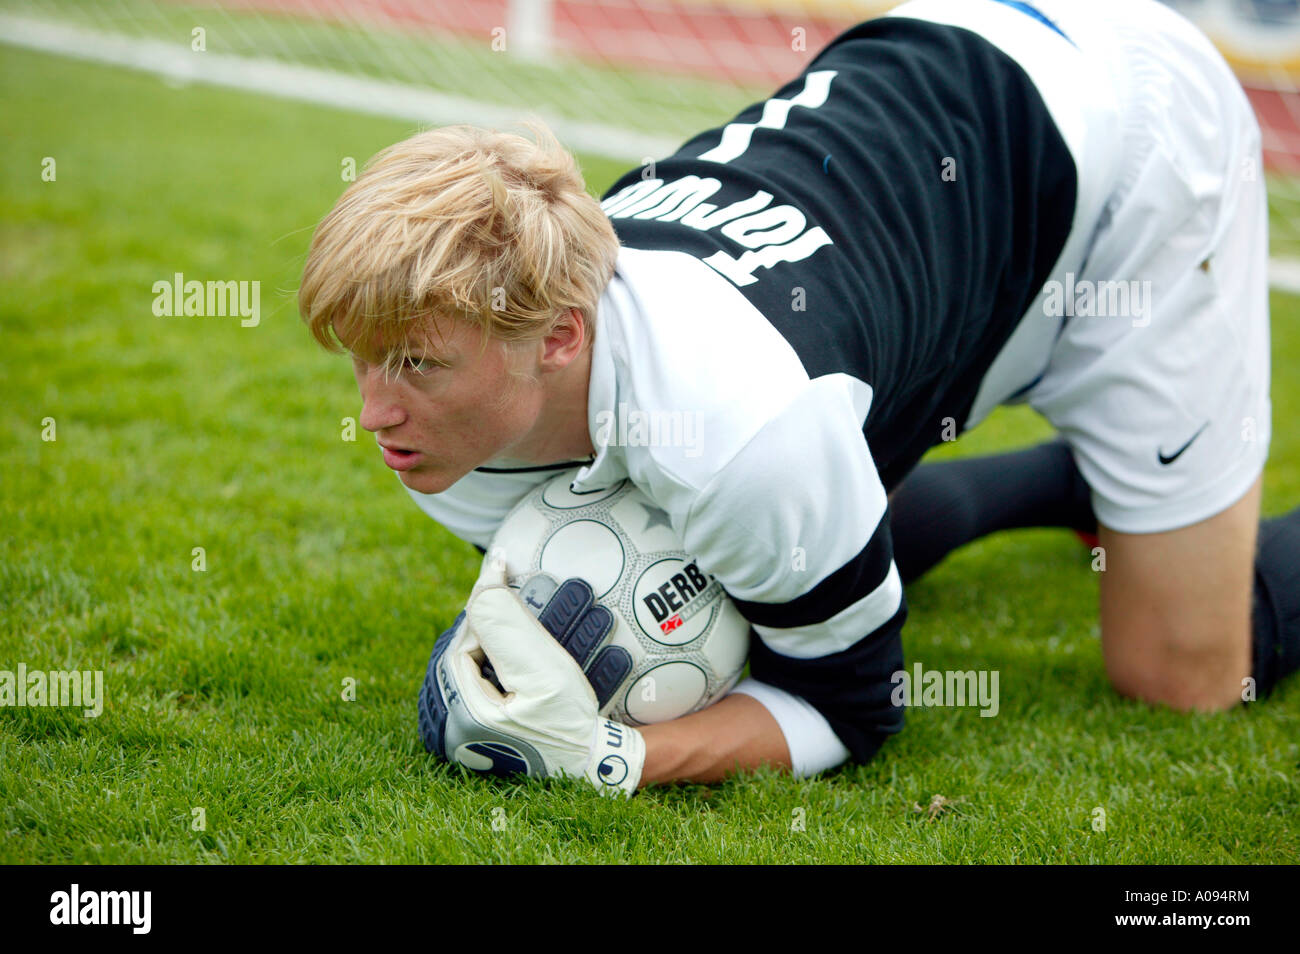 Fussballspieler Torwart, football player goalkeeper - Stock Image